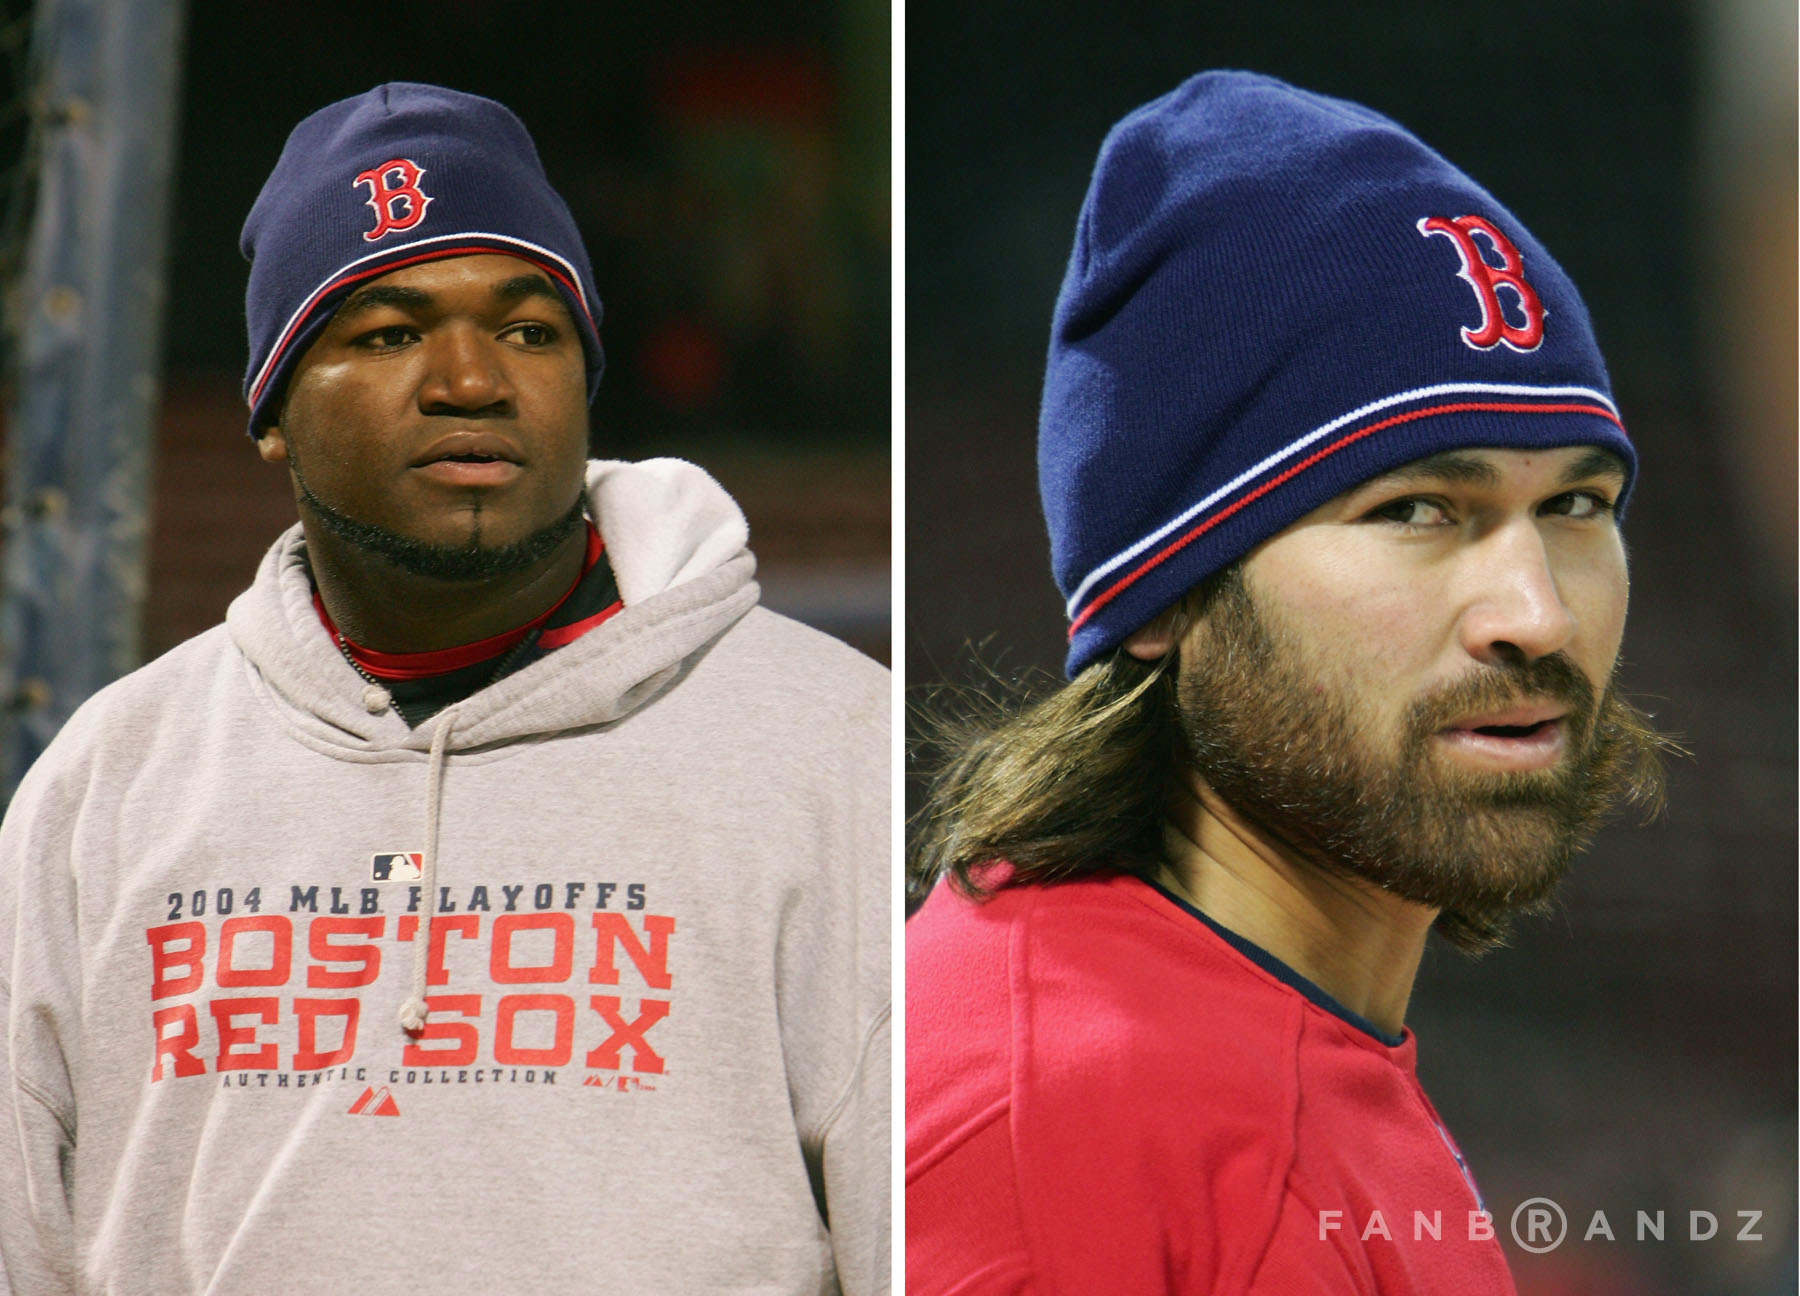 Before Pedroia and Napoli we could enjoy the beard of Damon.